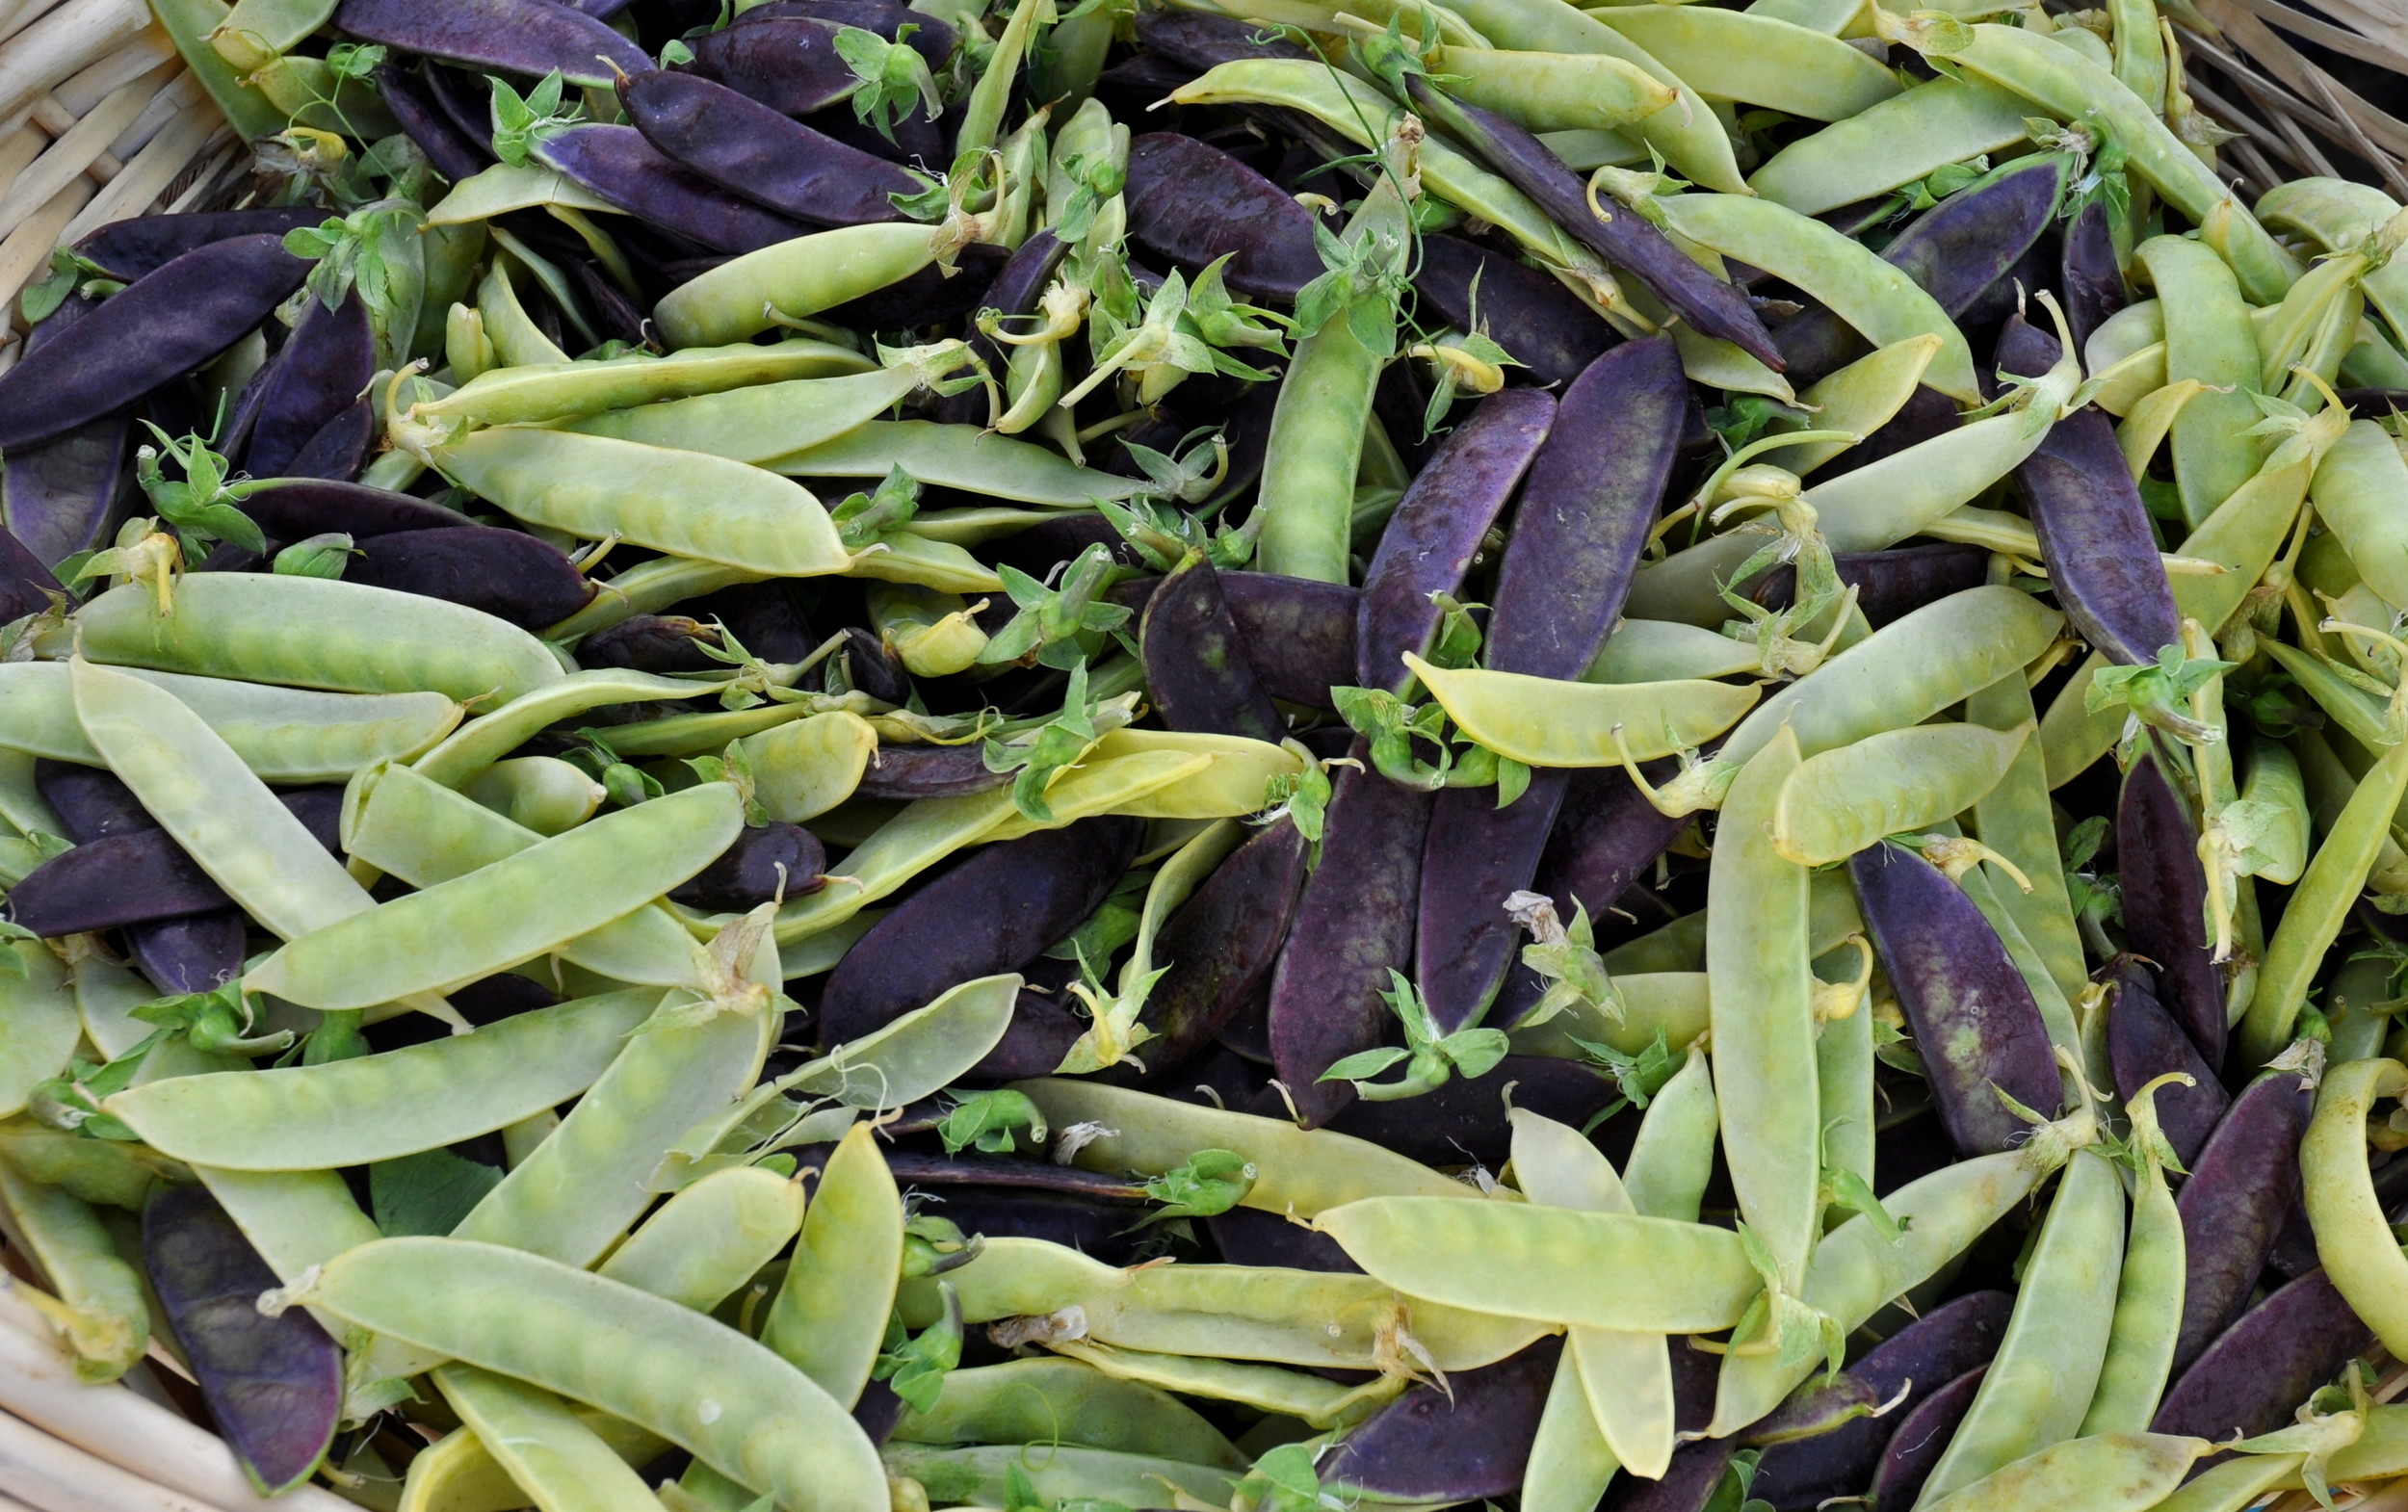 Exotic snow peas from Alm Hill Gardens. Photo copyright 2014 by Zachary D. Lyons.